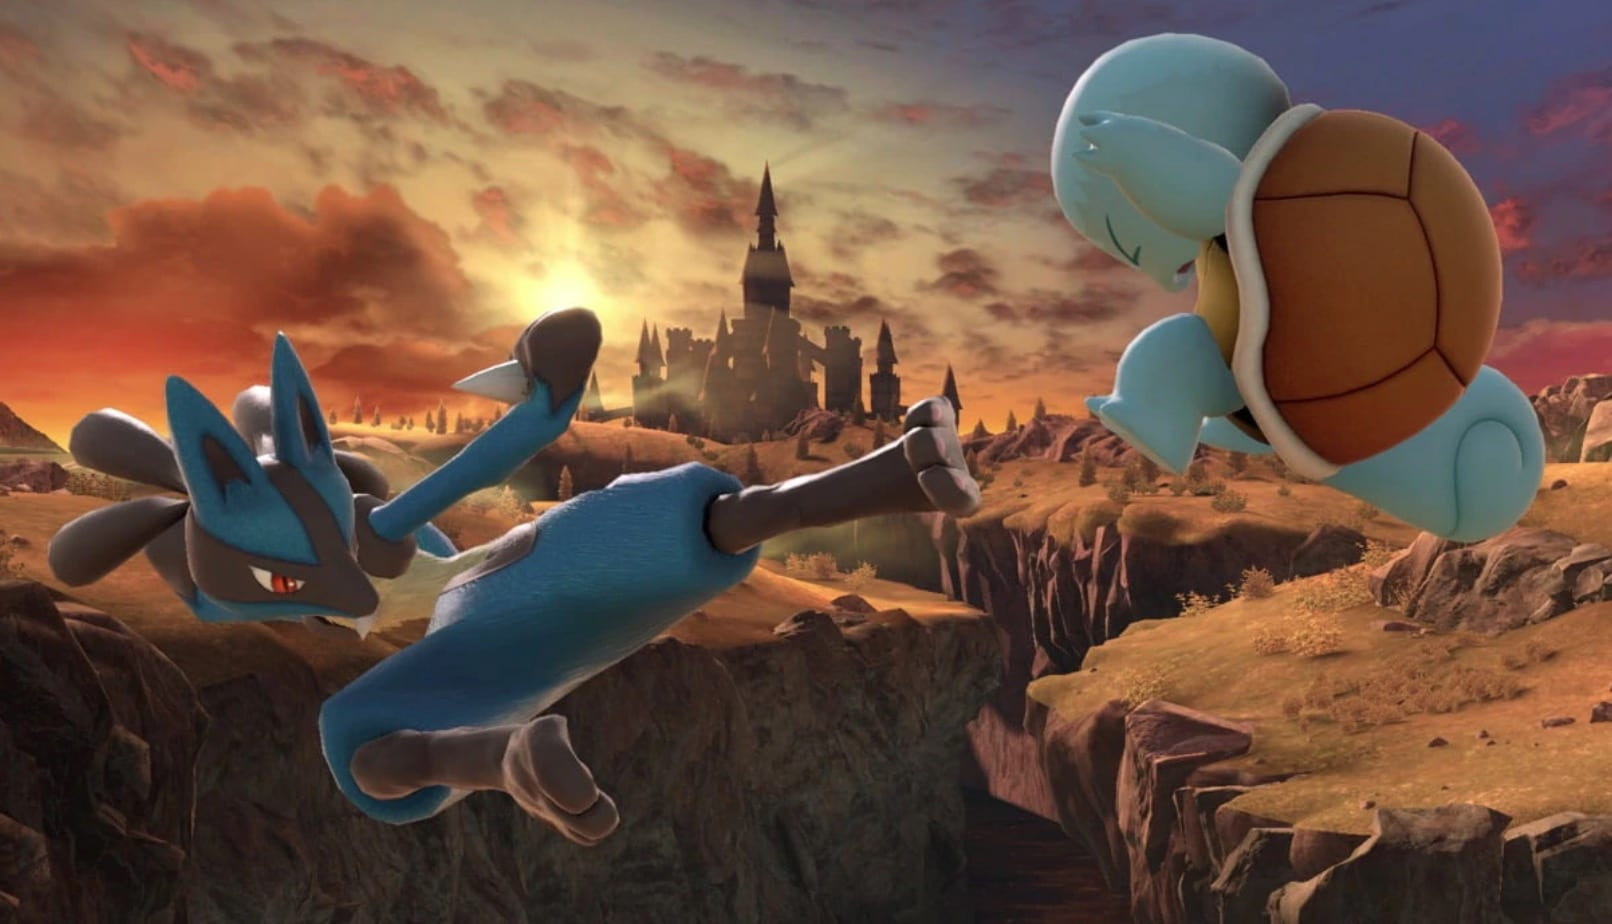 super smash bros. ultimate, patch notes, ver 9.0.0. buffs nerfs